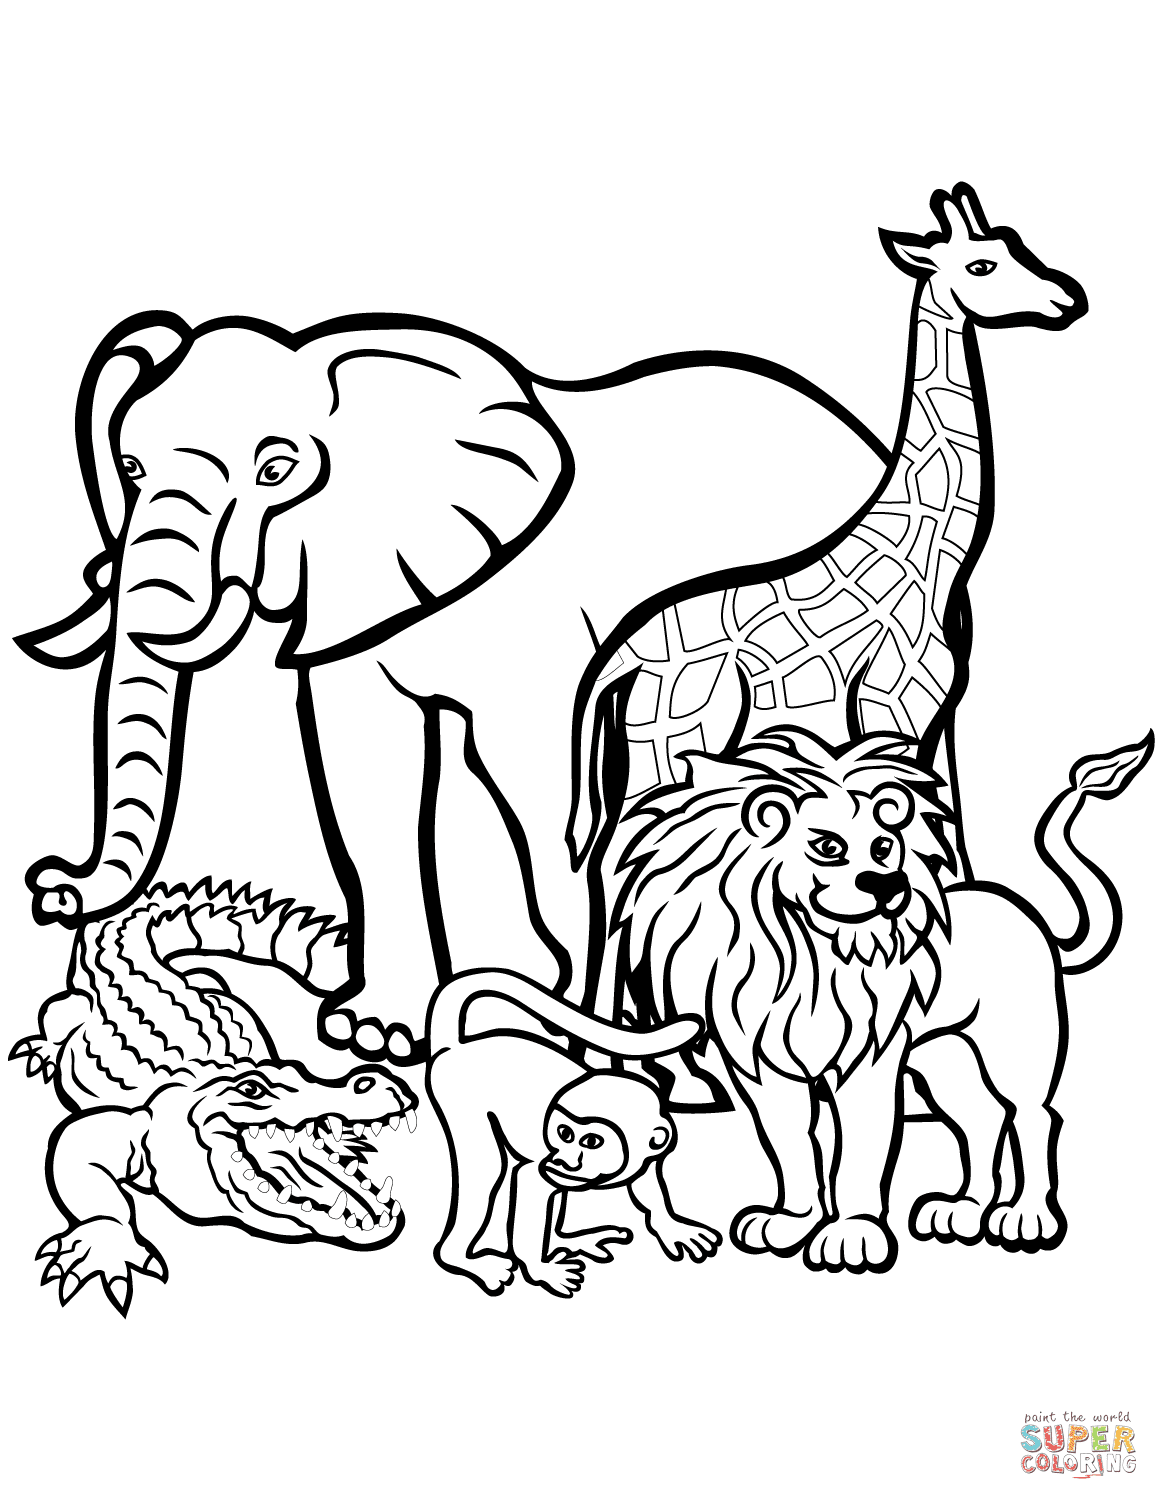 410 Coloring Pages Of Animals For Toddlers For Free